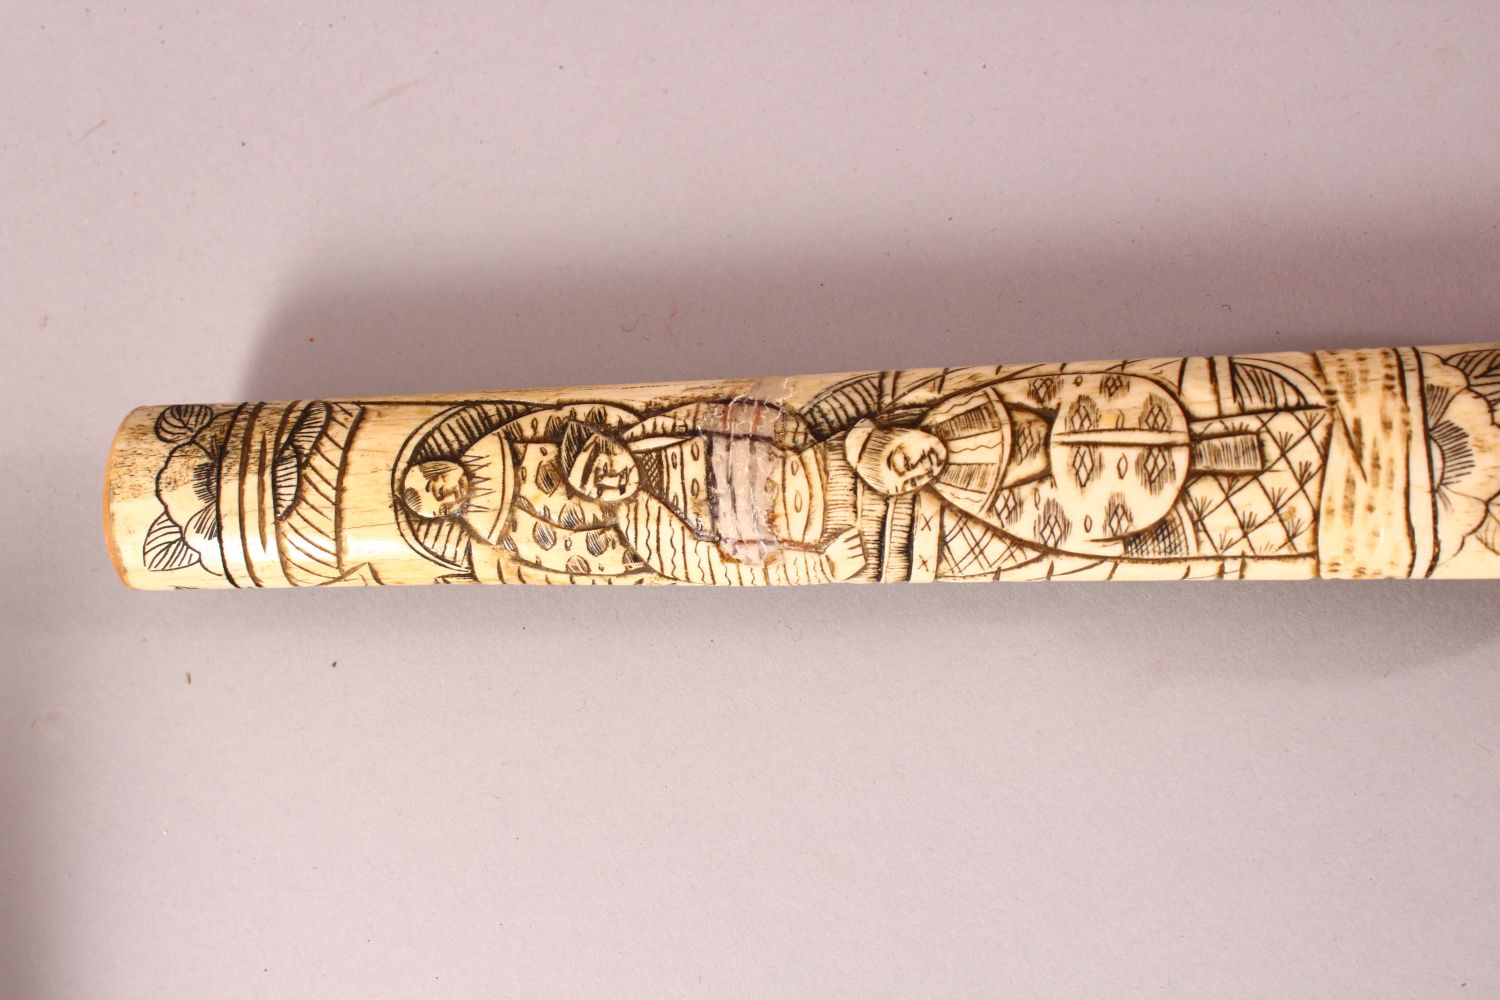 A JAPANESE MEIJI PERIOD SECTIONAL CARVED IVORY SWORD, carved with scenes of figures (AF) 85cm - Image 6 of 7